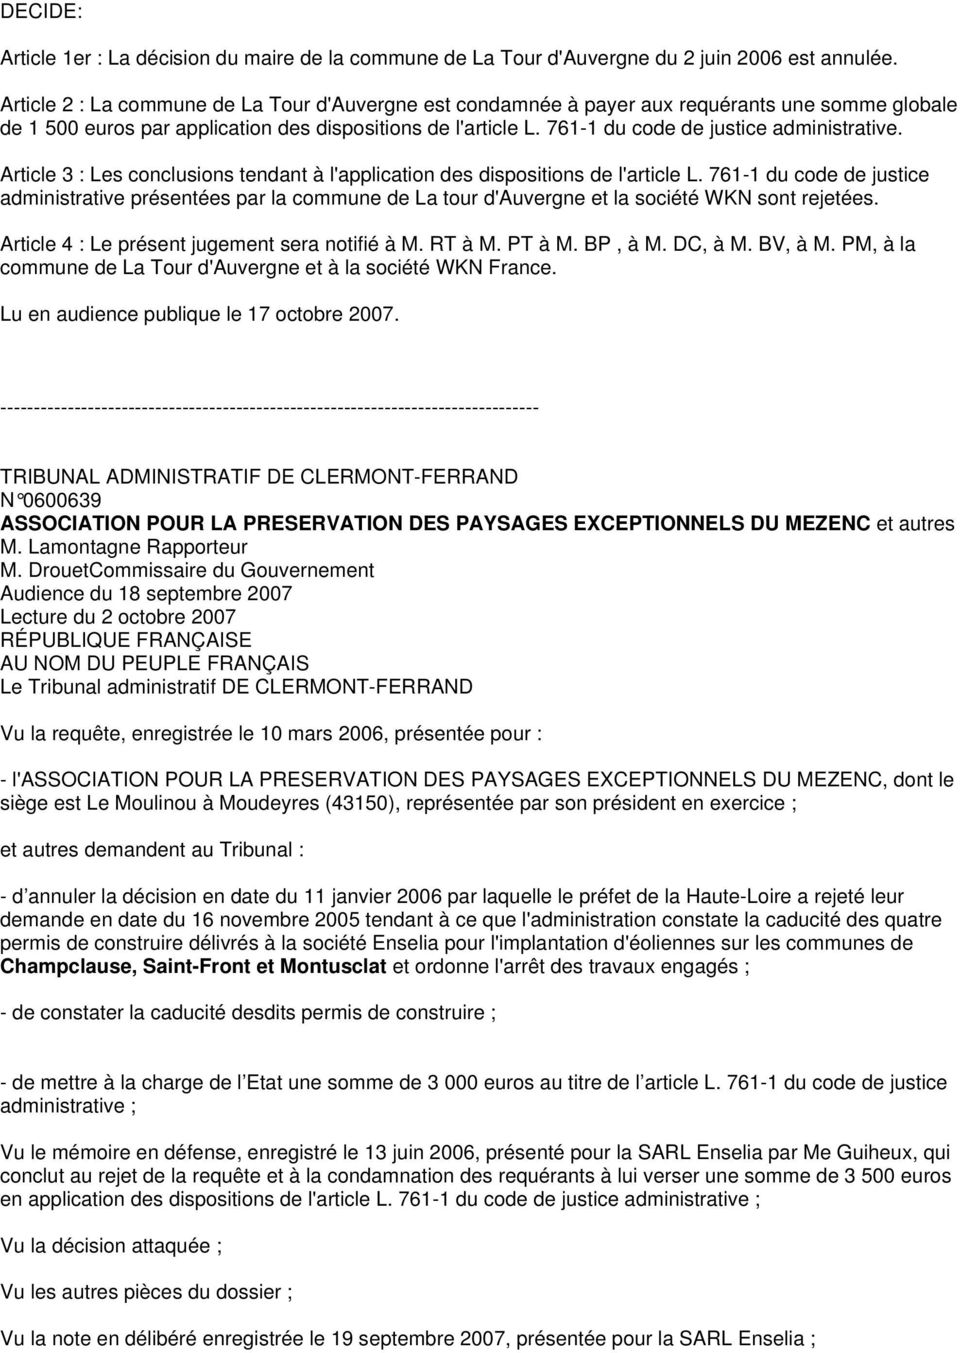 761-1 du code de justice administrative. Article 3 : Les conclusions tendant à l'application des dispositions de l'article L.